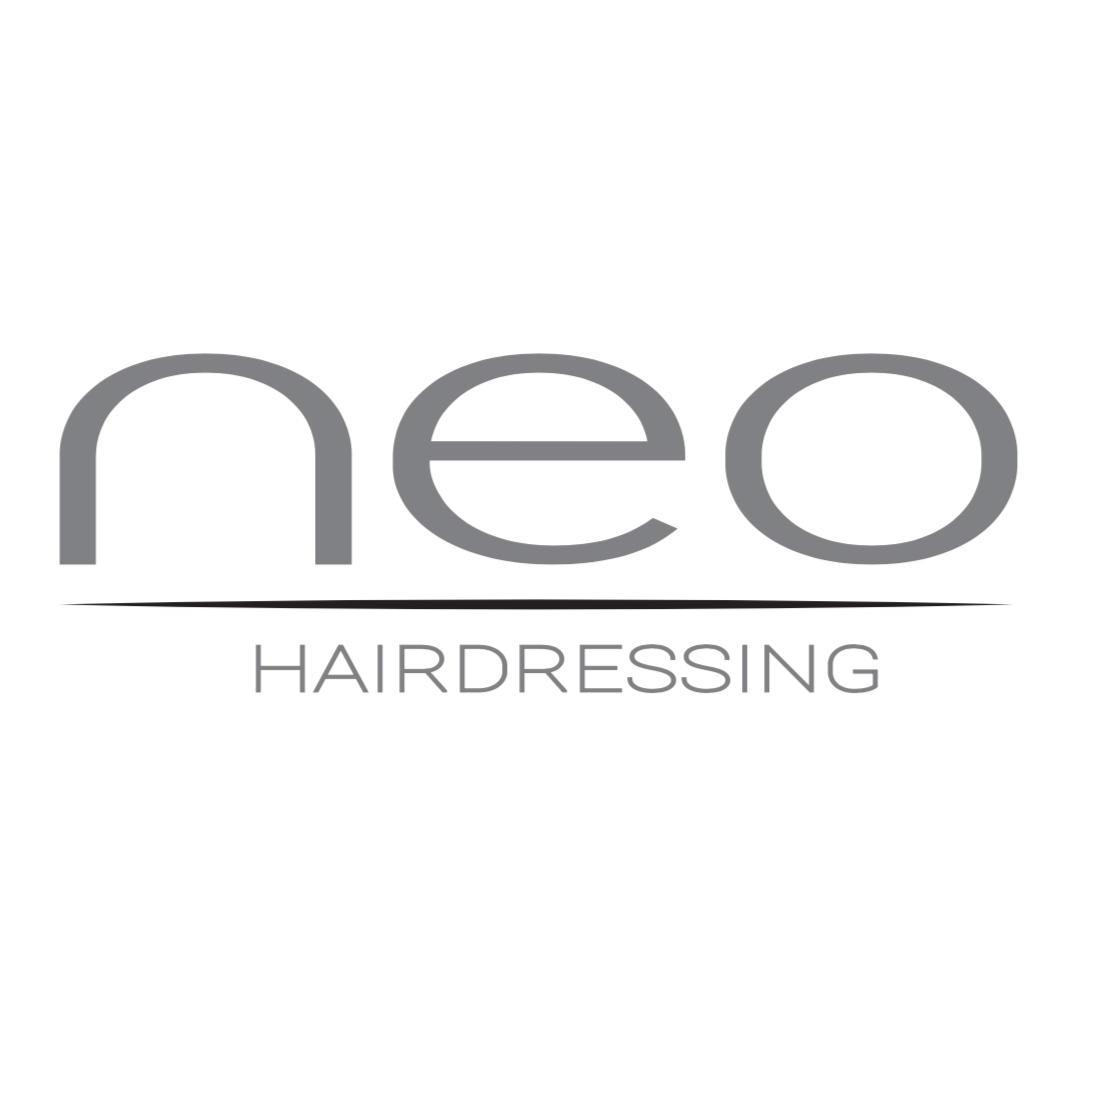 Neo Hairdressing - Edgware, London HA8 7JG - 020 8951 5521 | ShowMeLocal.com